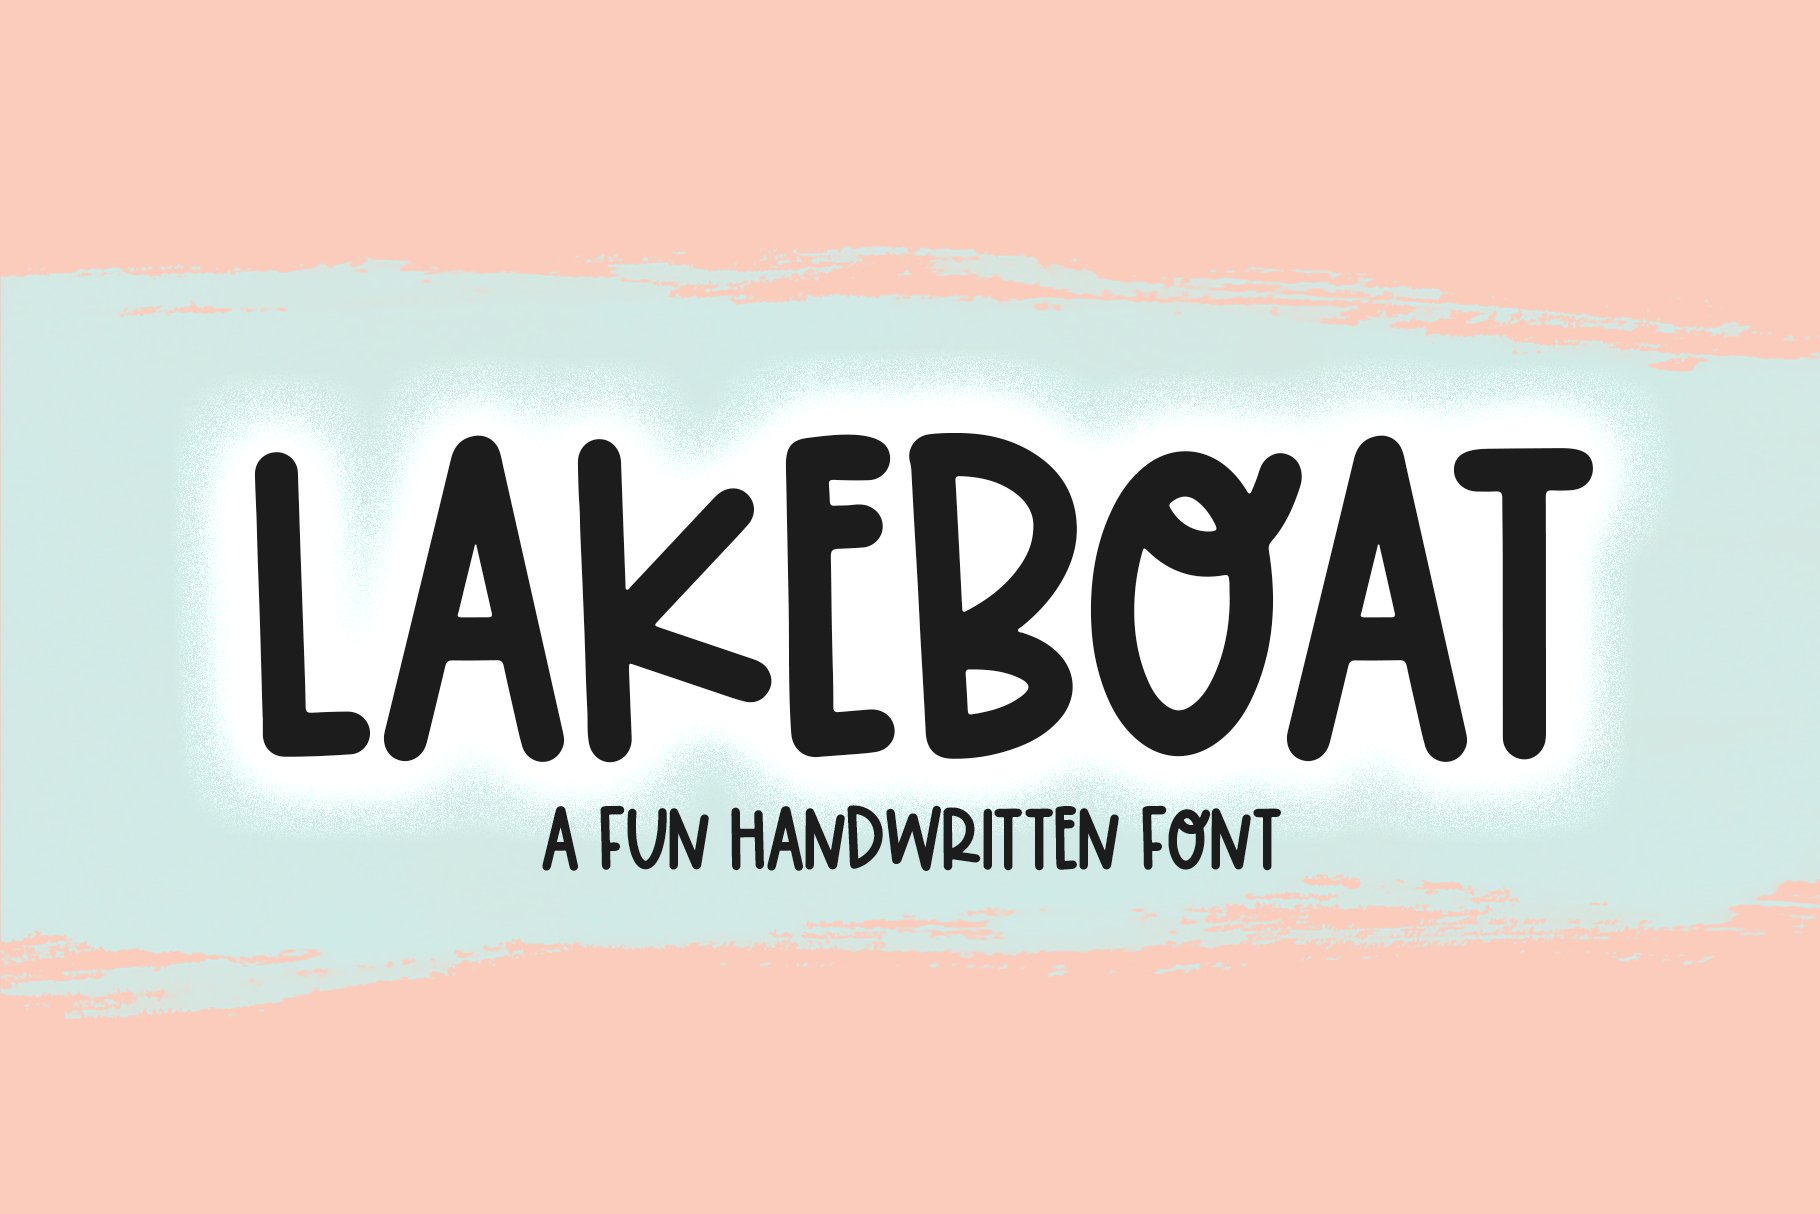 Lakeboat - A Quirky Handwritten Font example image 1